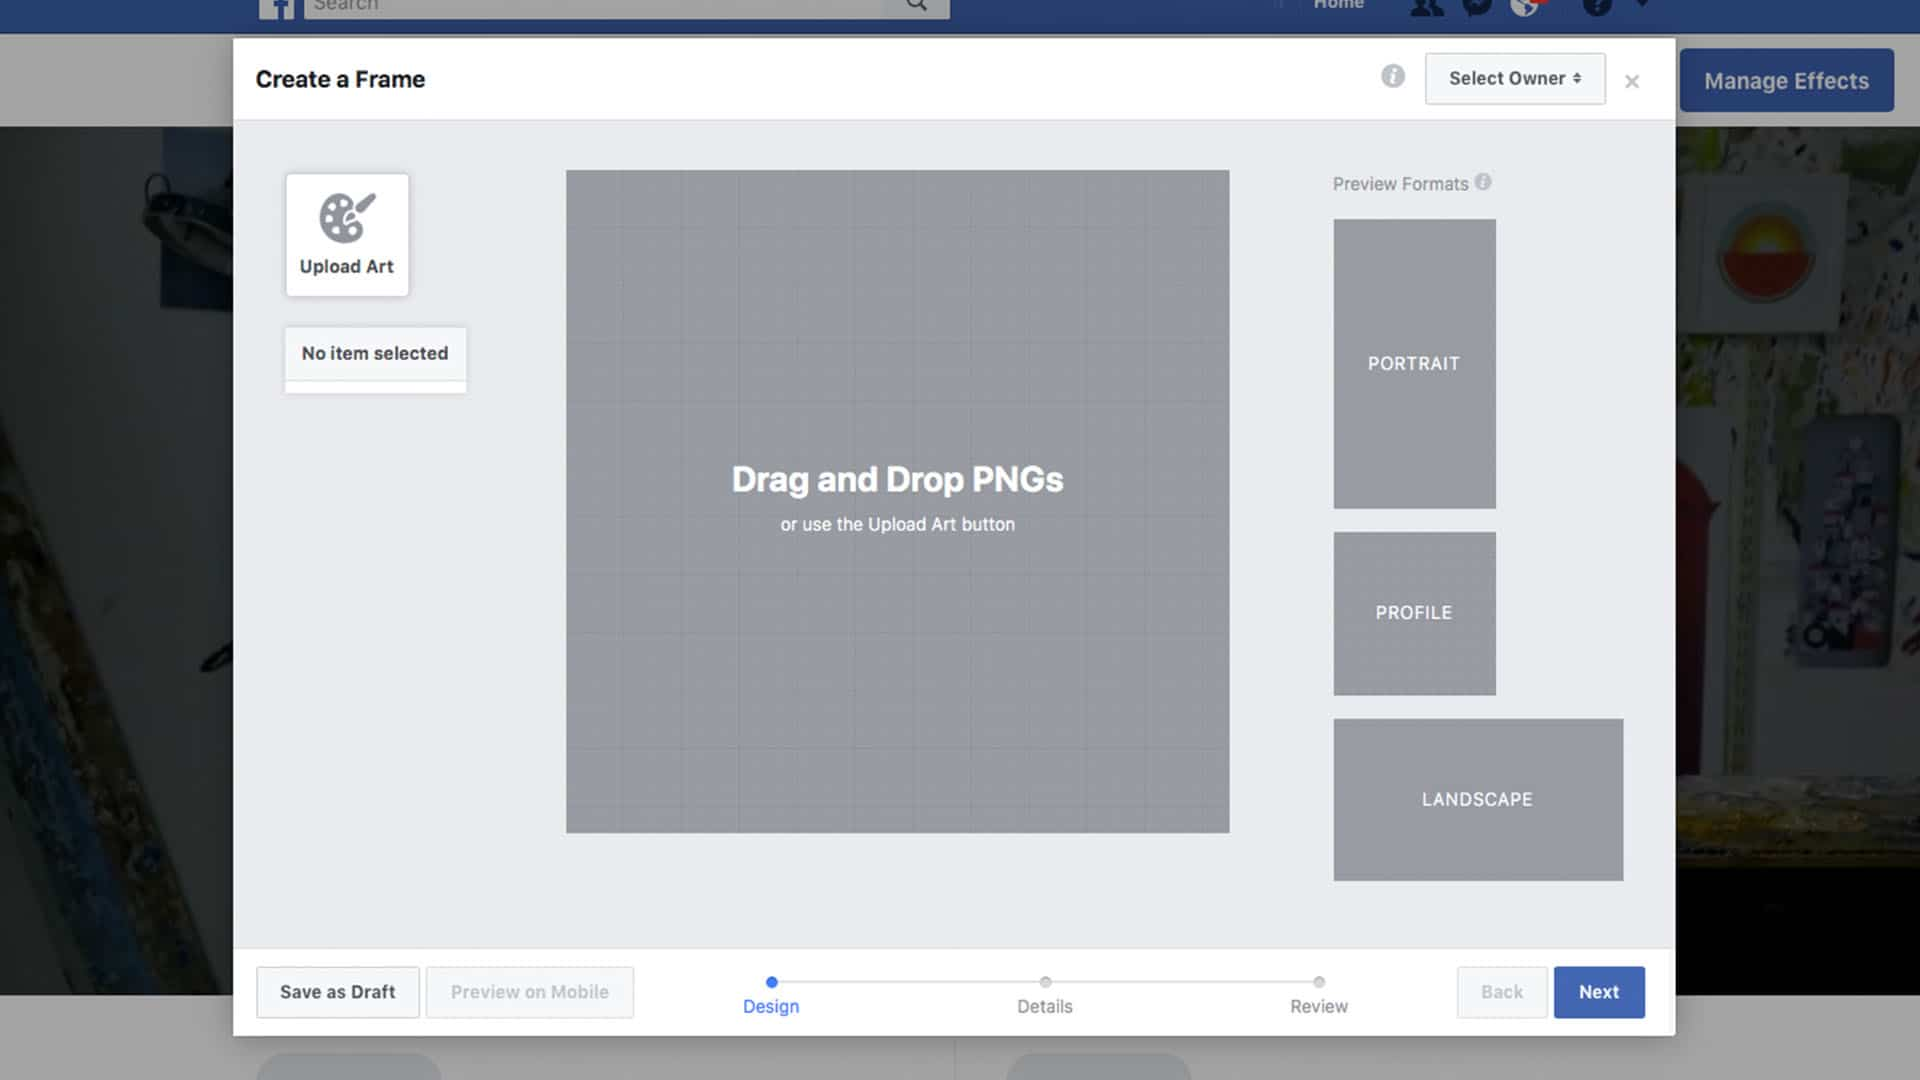 How To Create A Custom Facebook Profile Frame + 3 Free Templates ...